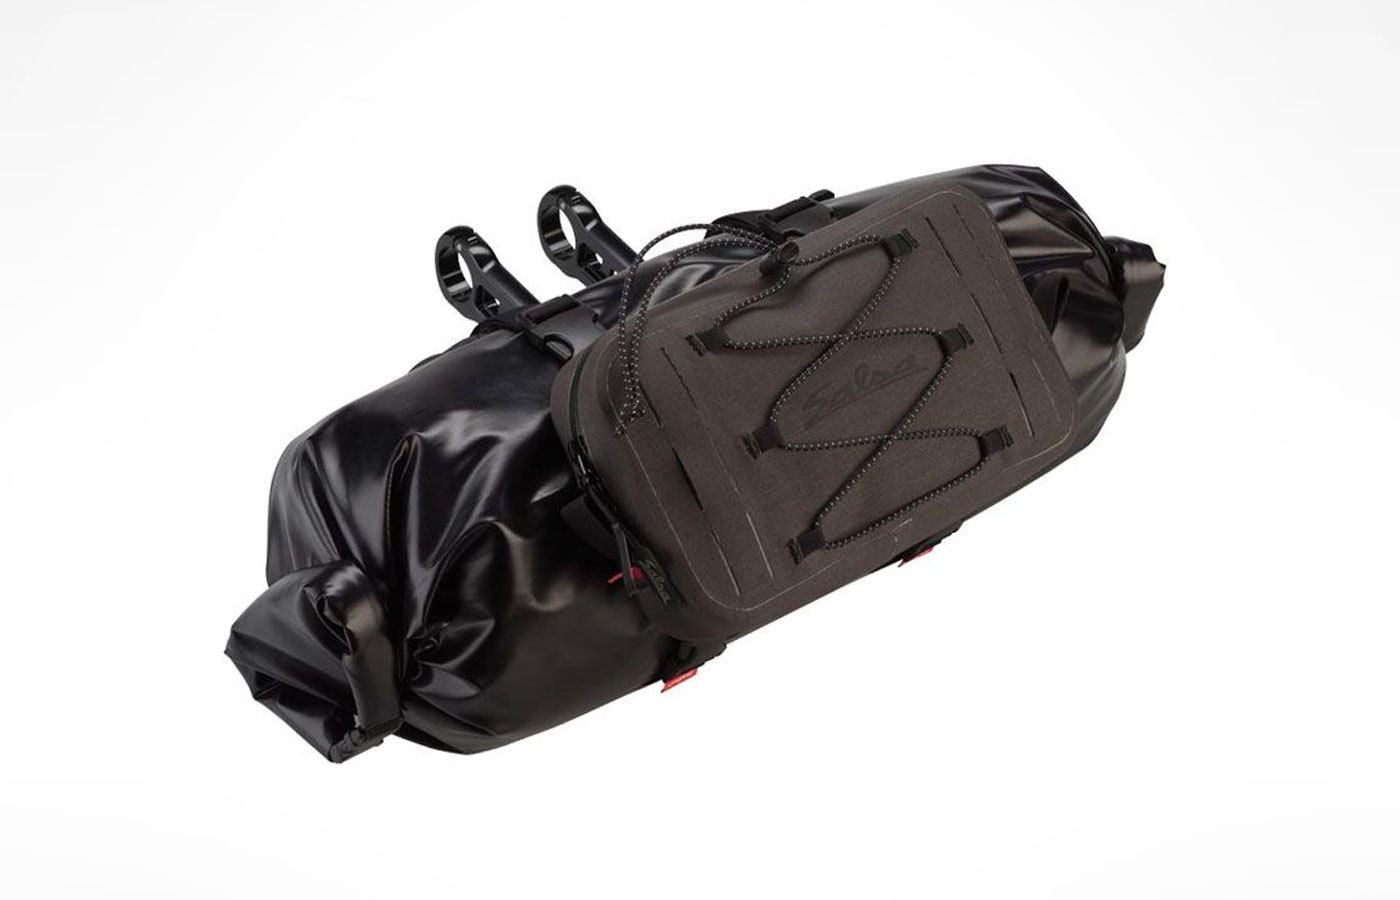 Salsa EXP Anything Cradle with 15l Dry Bag, Pouch and Straps